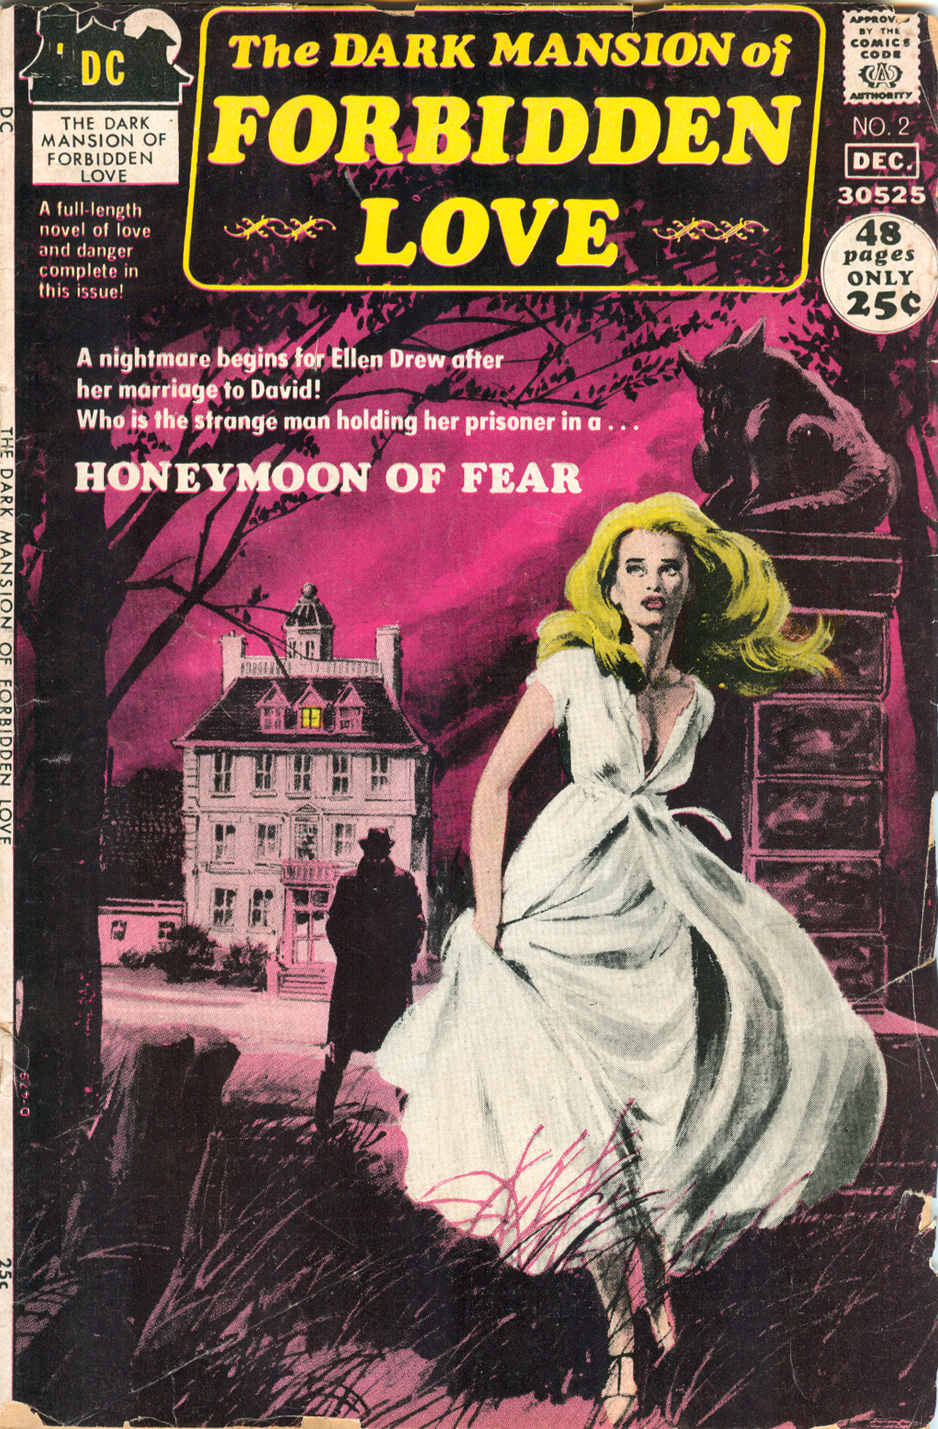 The Dark Mansion of Forbidden Love  #2 (November/December 1971) Cover by Joe Orlando ( GCD )